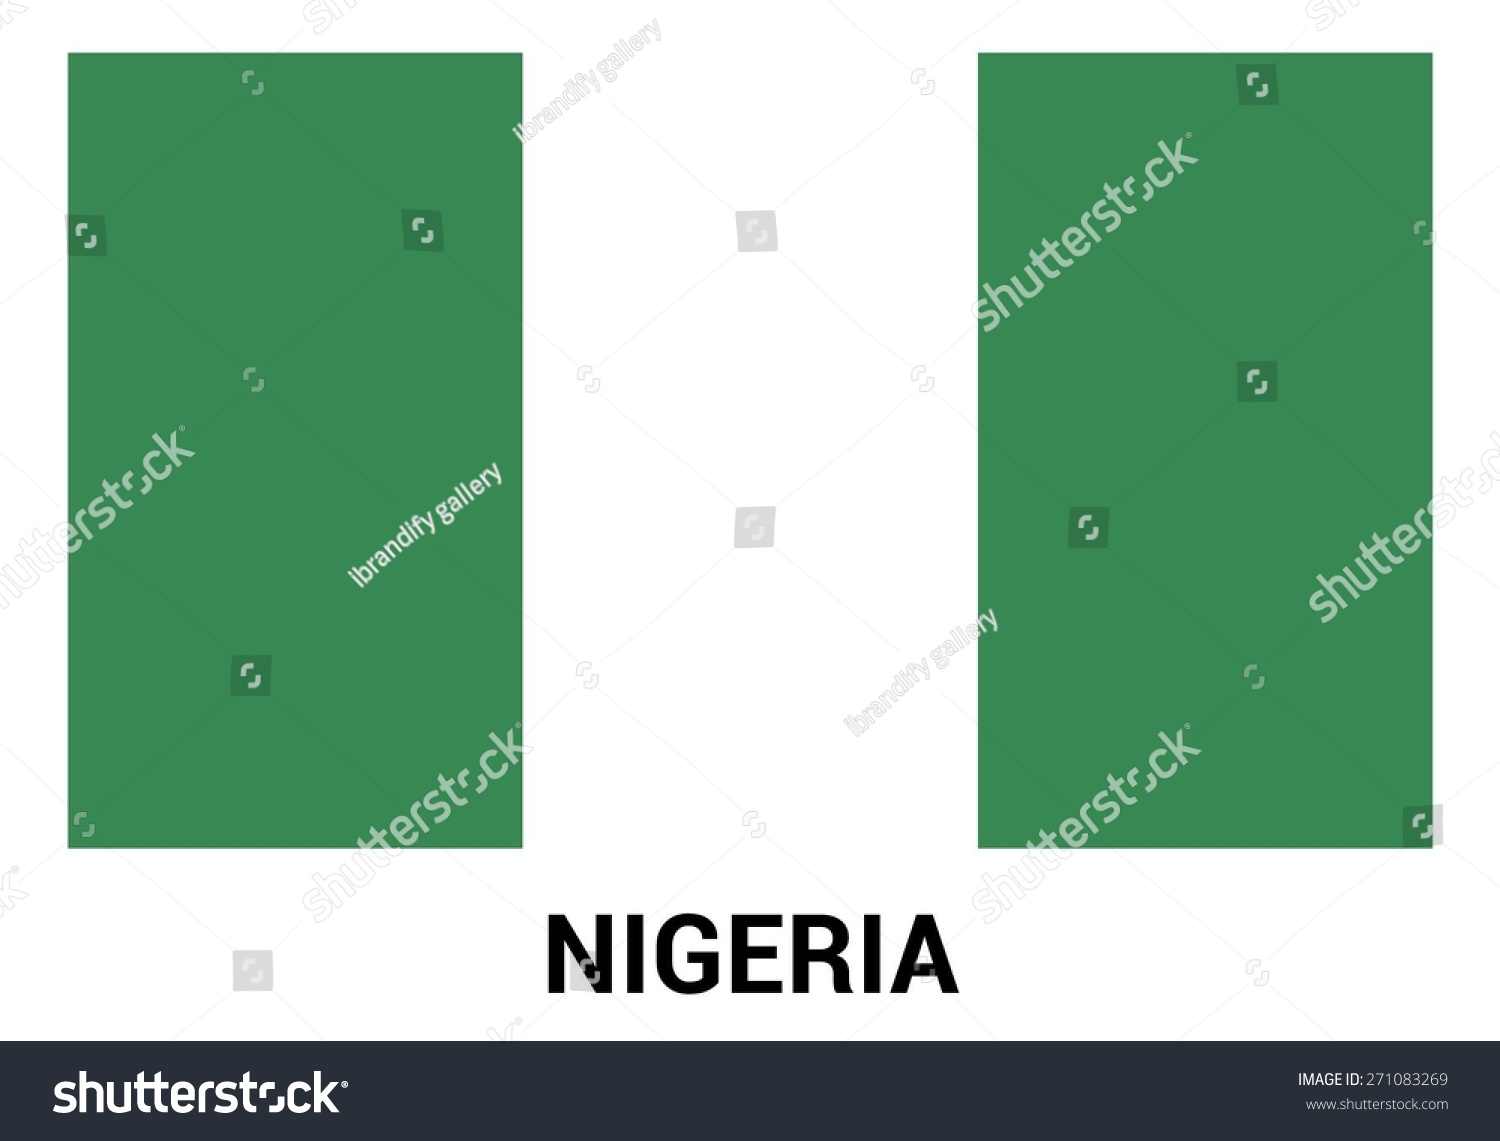 Nigeria Flag Isolated Vector ficial Colors Stock Vector